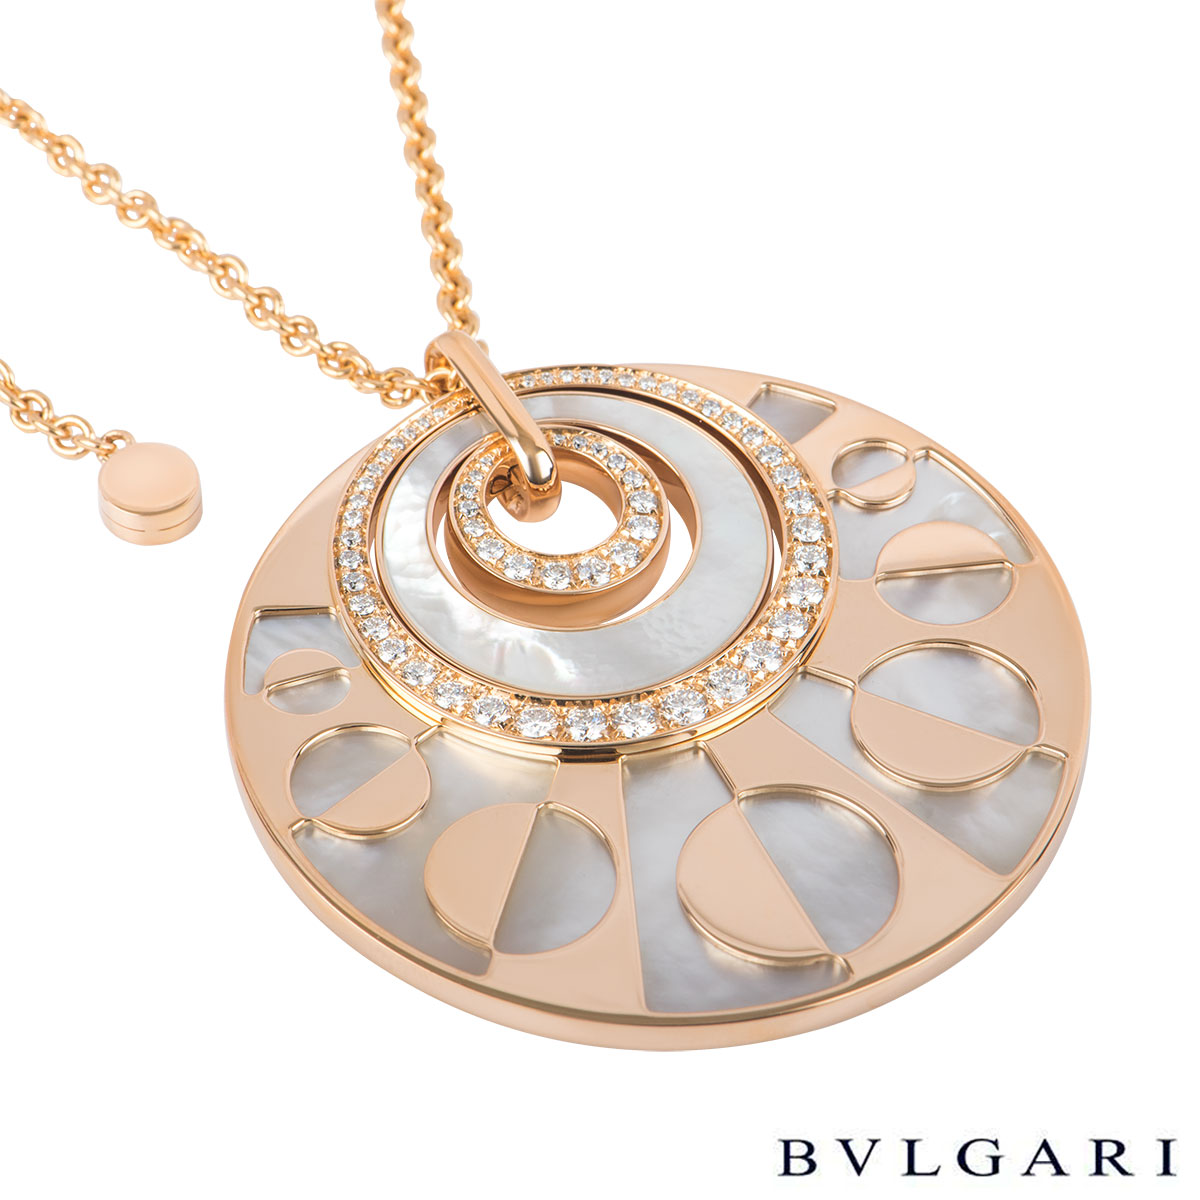 Bvlgari Rose Gold Intarsio Necklace 346299 CL855753